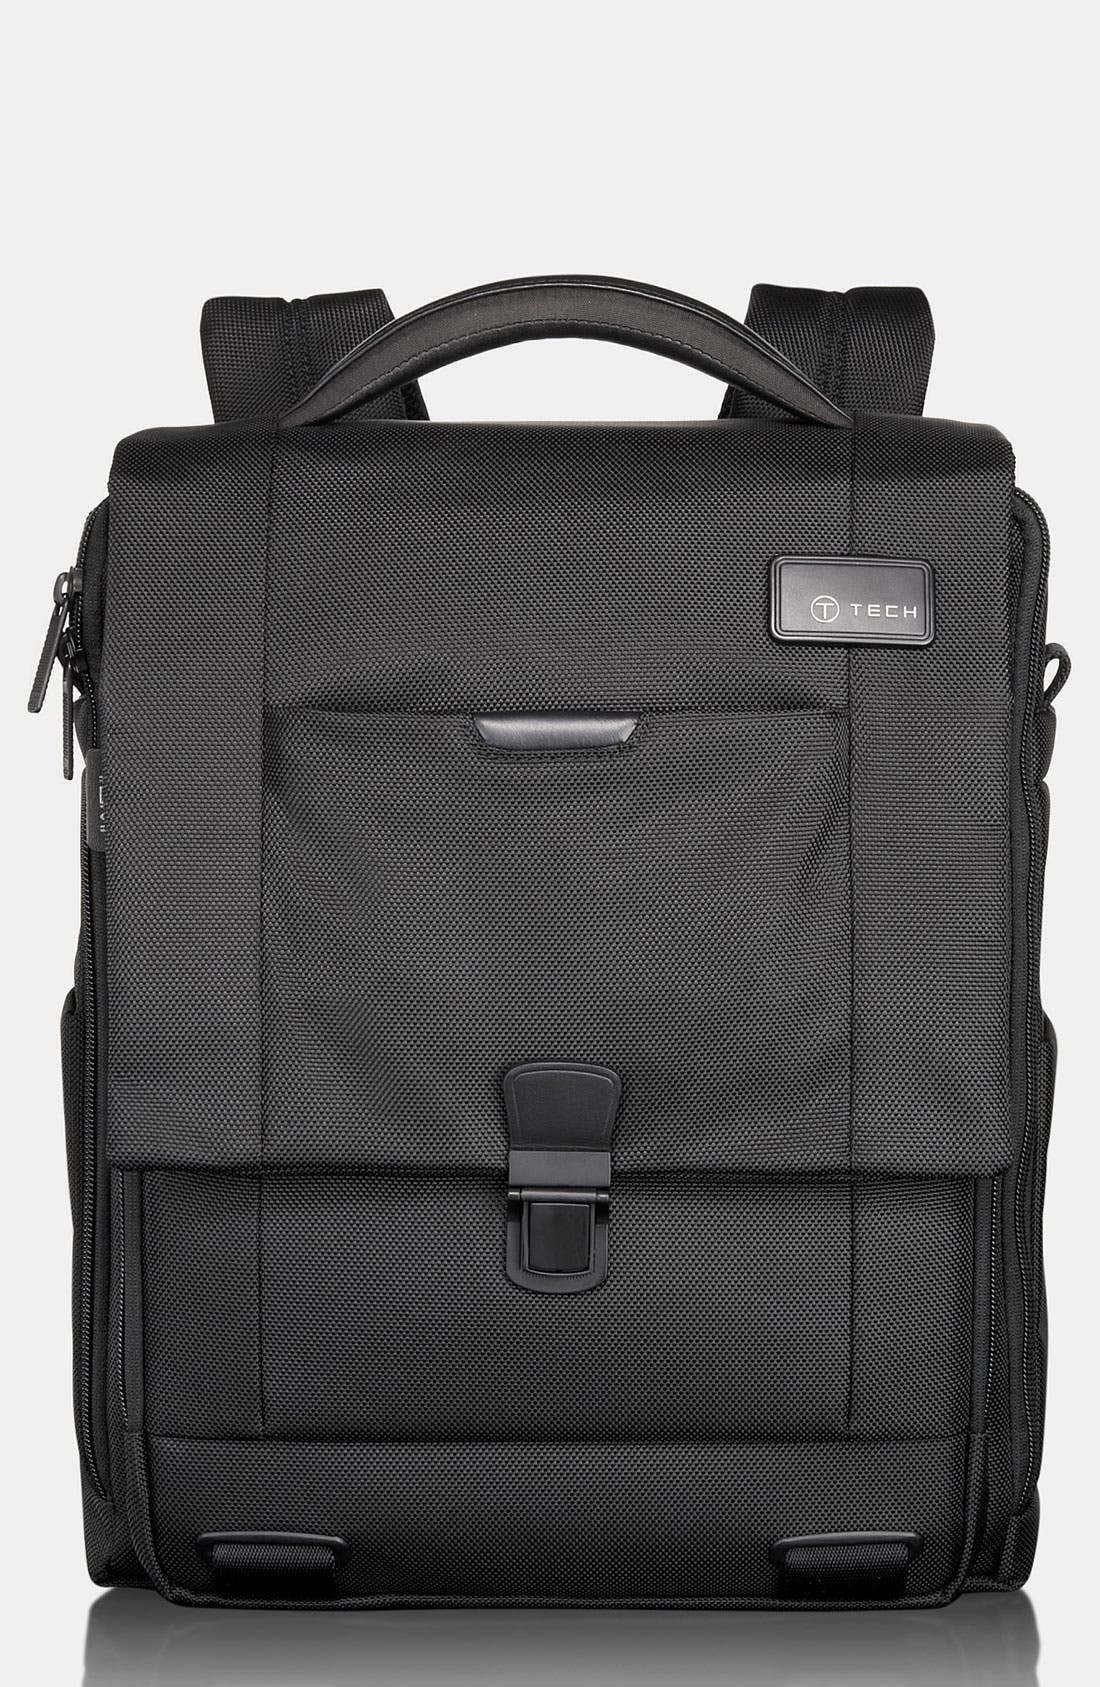 Alternate Image 1 Selected - Tumi 'T-Tech Network' Convertible Laptop Briefcase